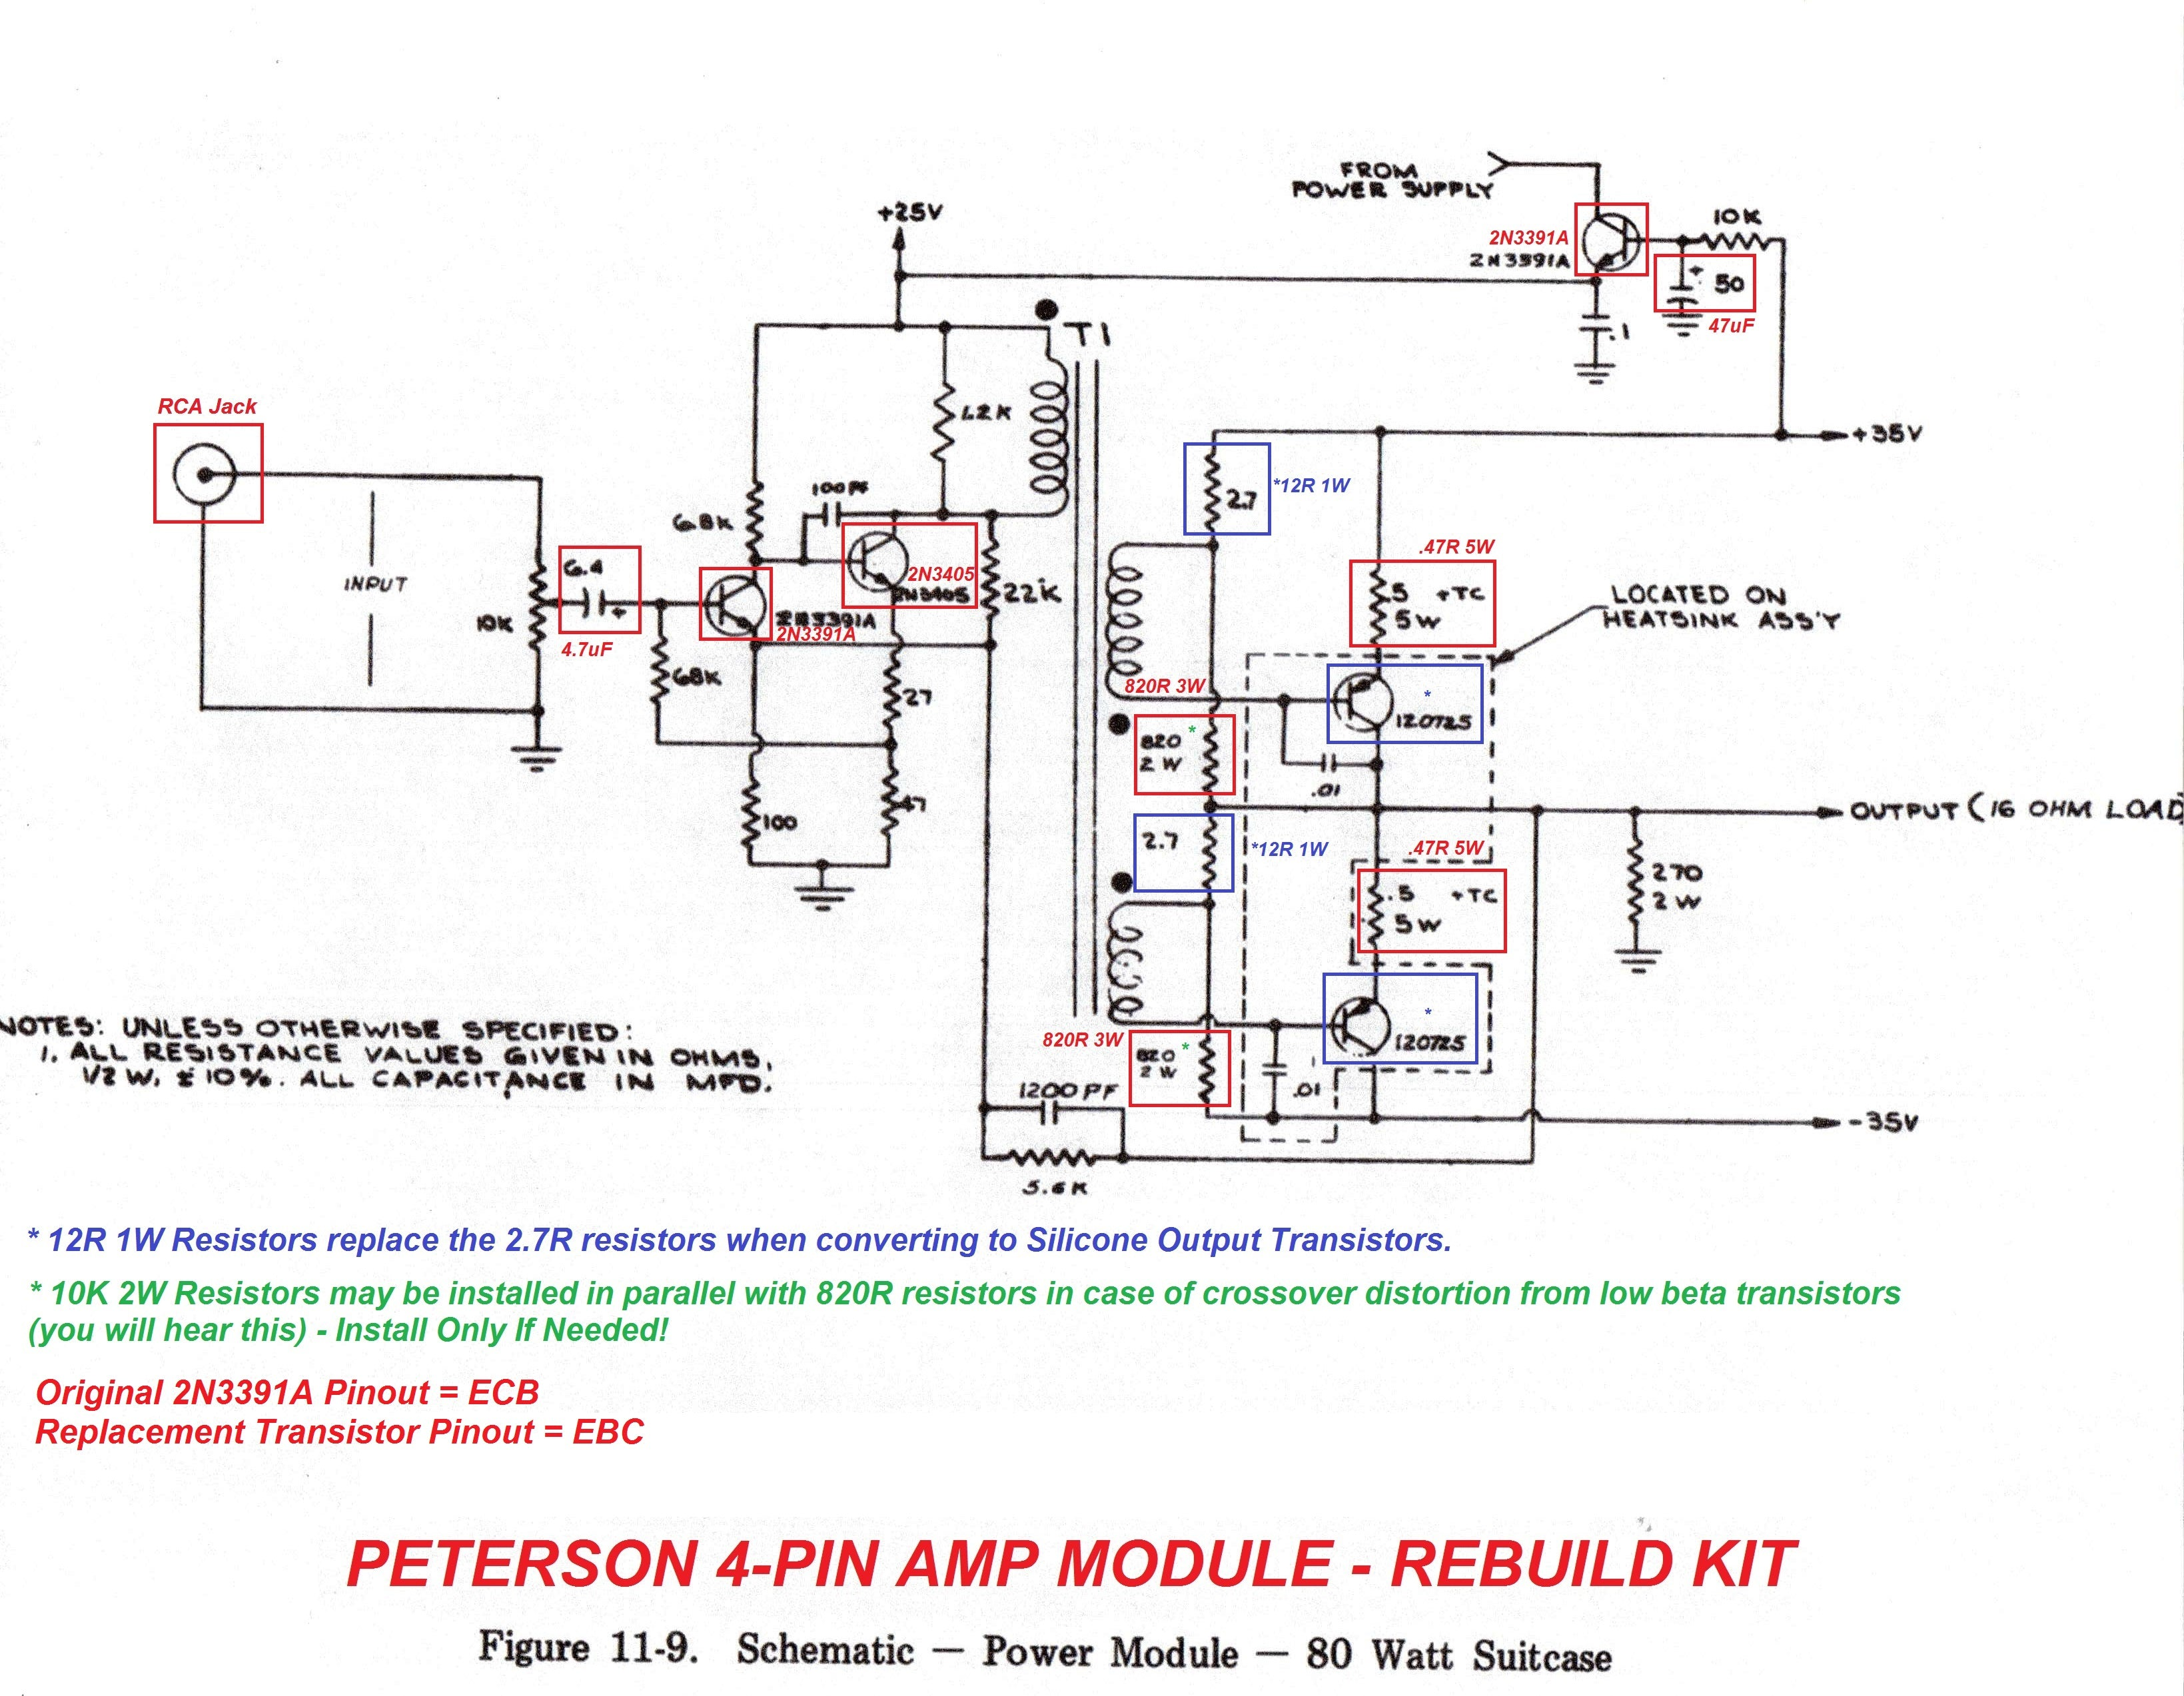 Antique Radio Forums View Topic Not Quite A Rhodes Piano Peterson 7 Way Wiring Diagram Amp Module Schematic Annotated By Vintage Vibe For Their Rebuild Kit